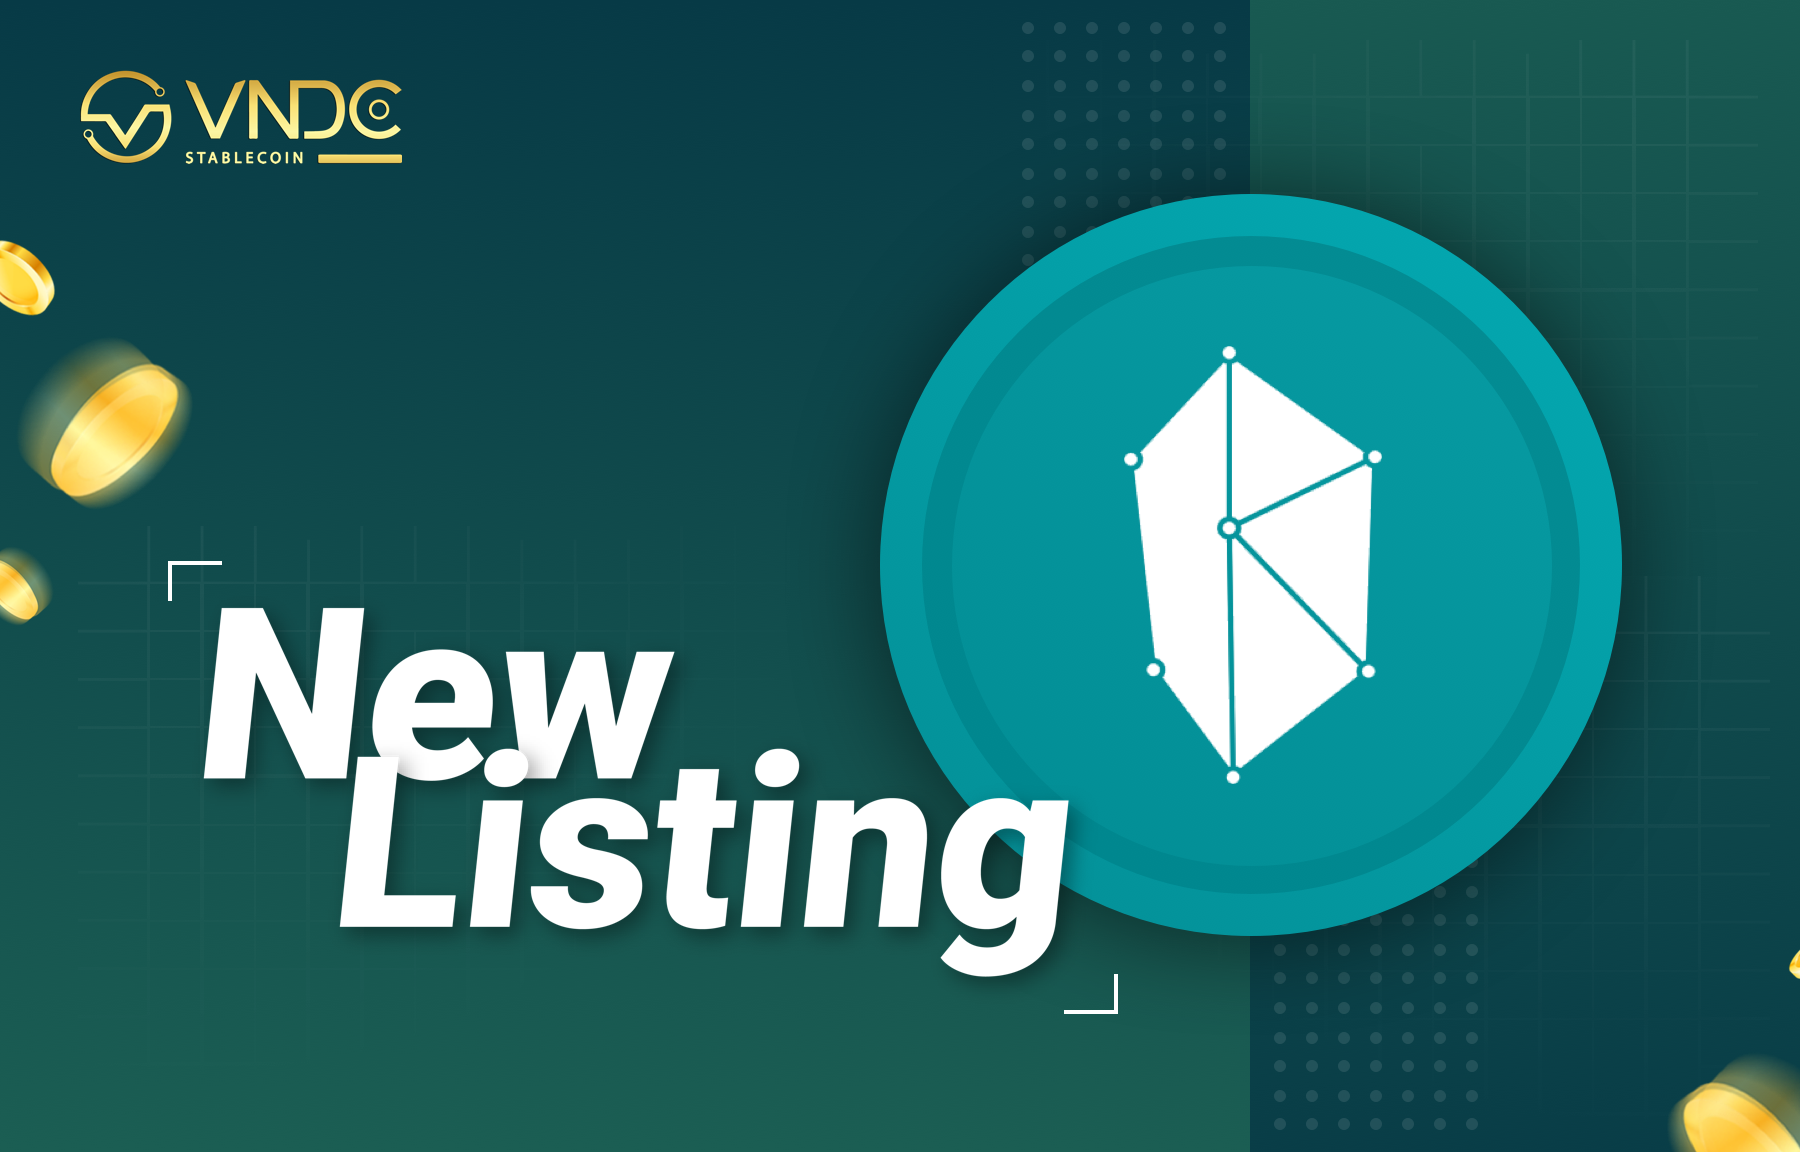 Kyber Network (KNC) officially listed on VNDC Wallet App